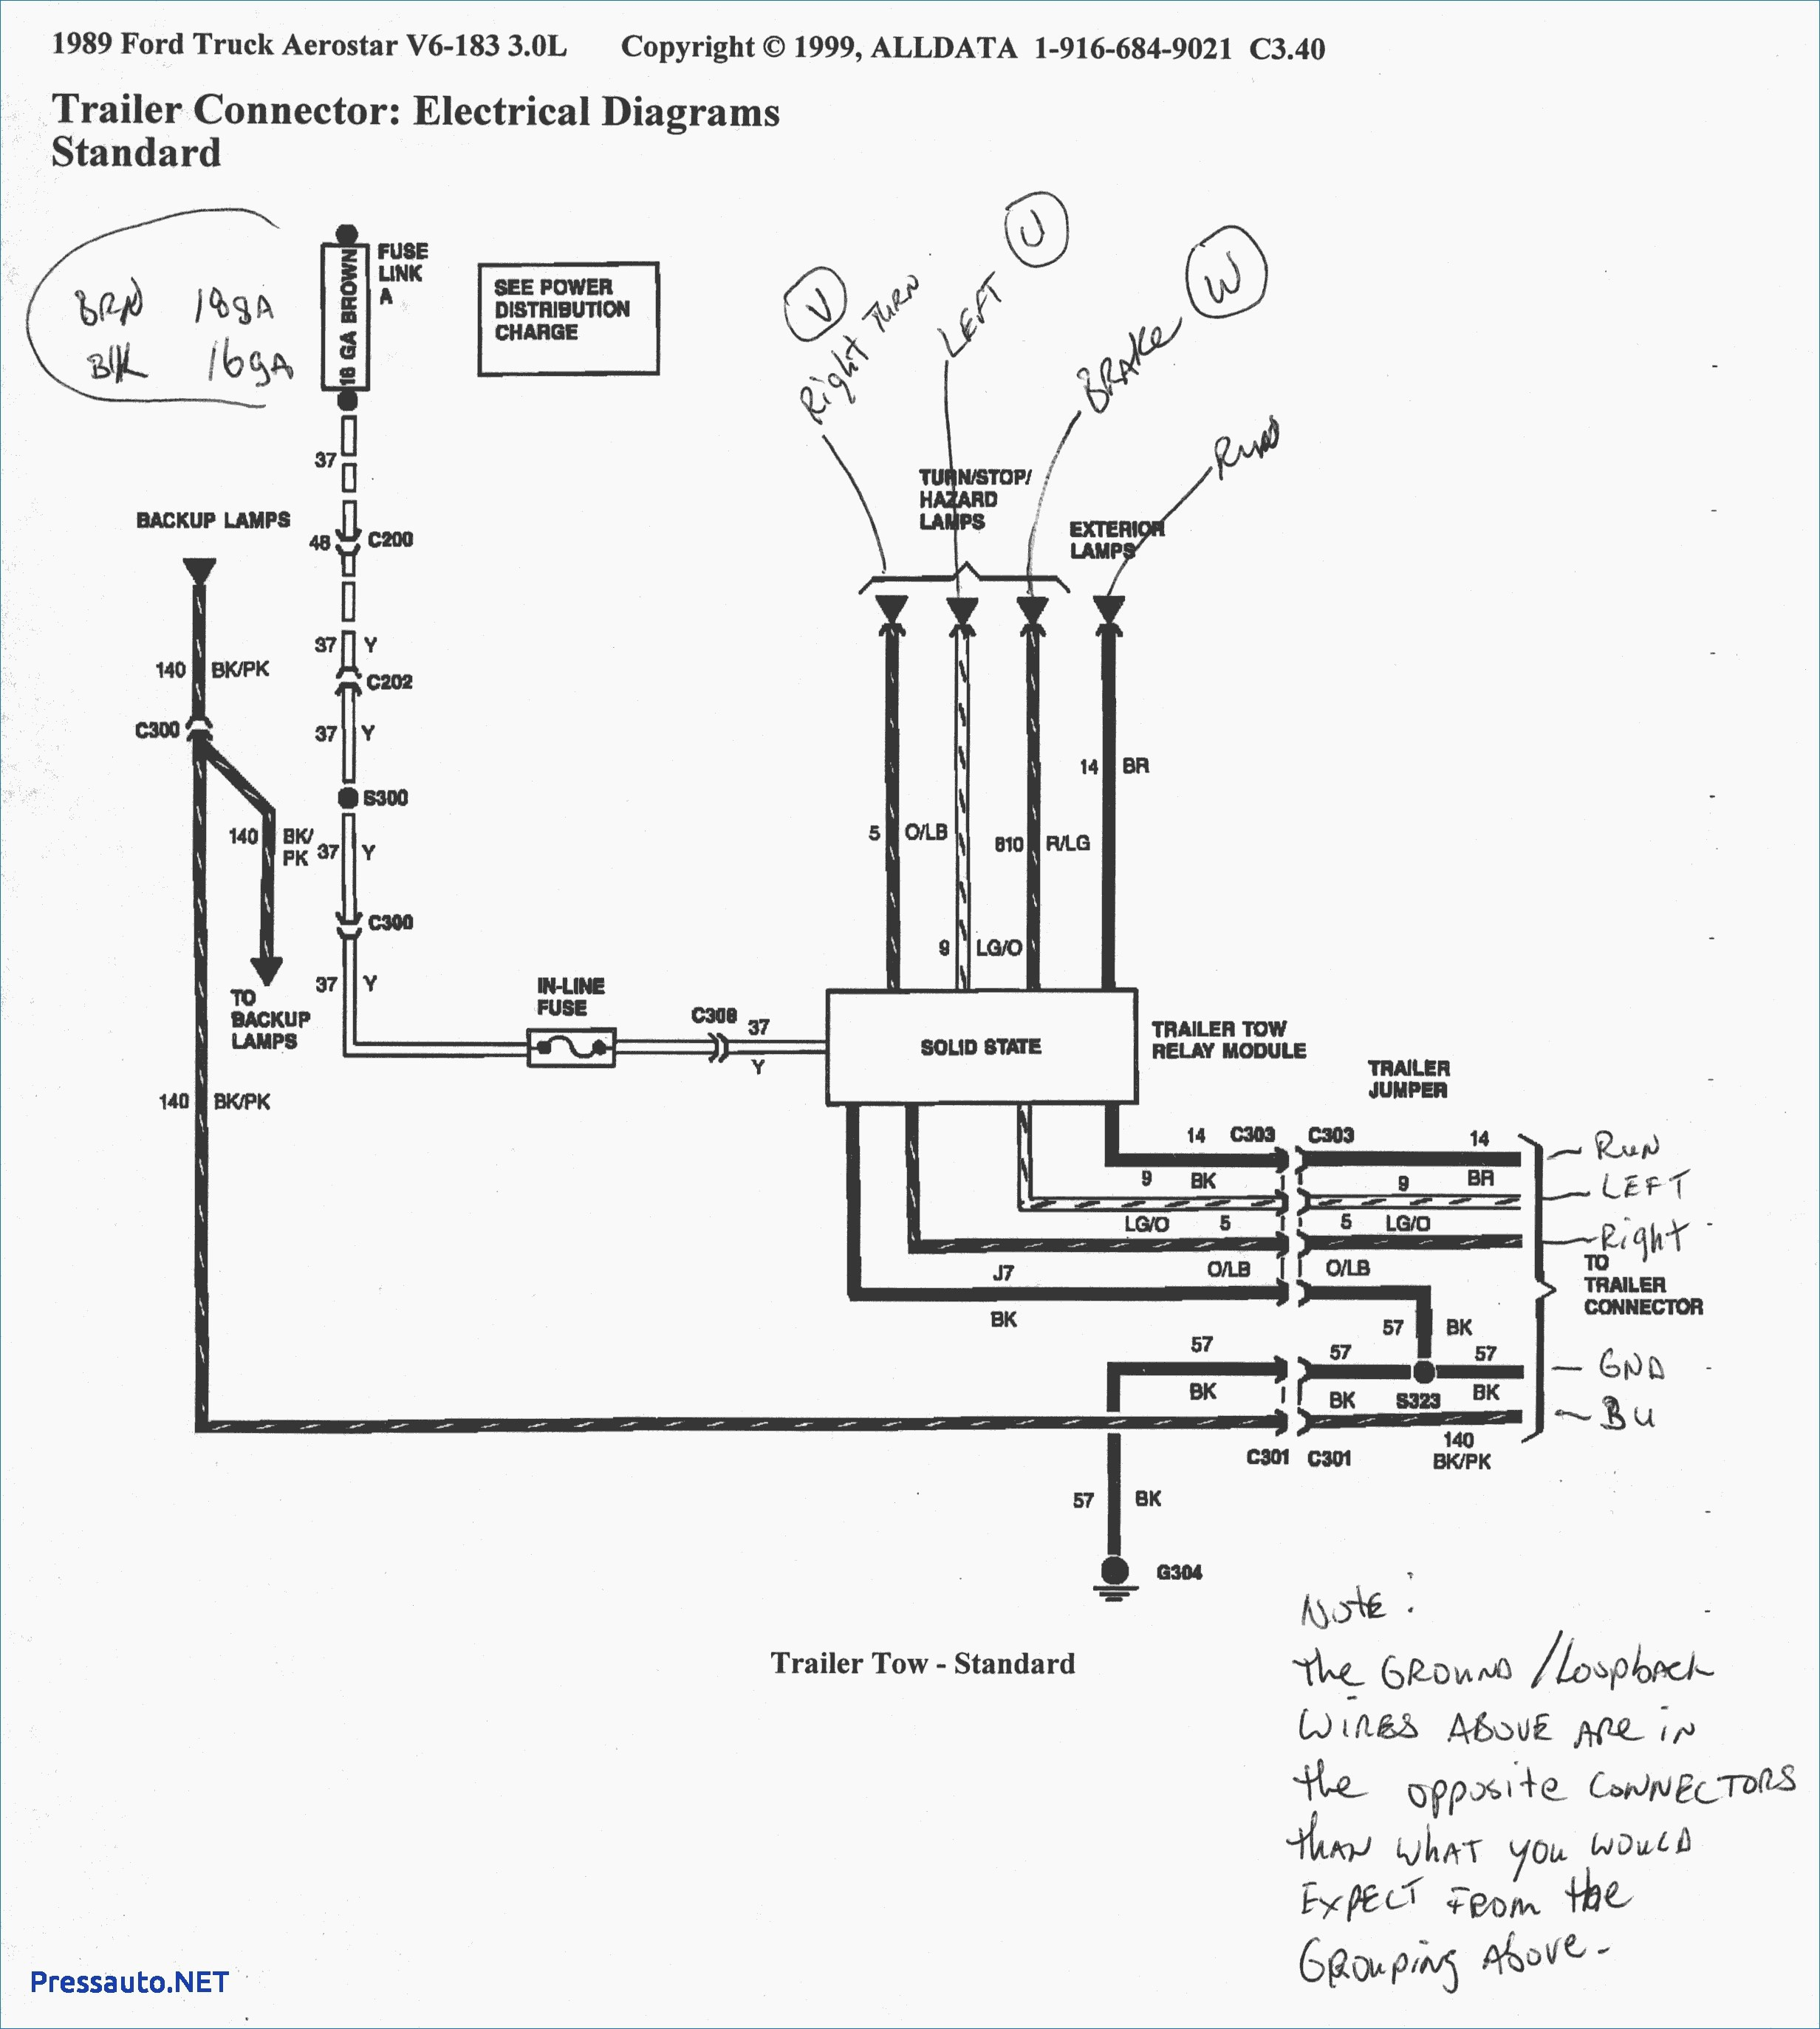 1998 ford f150 trailer wiring diagram Download-2002 Ford F150 Trailer Wiring Harness Diagrams 1990 Diagram 15-e